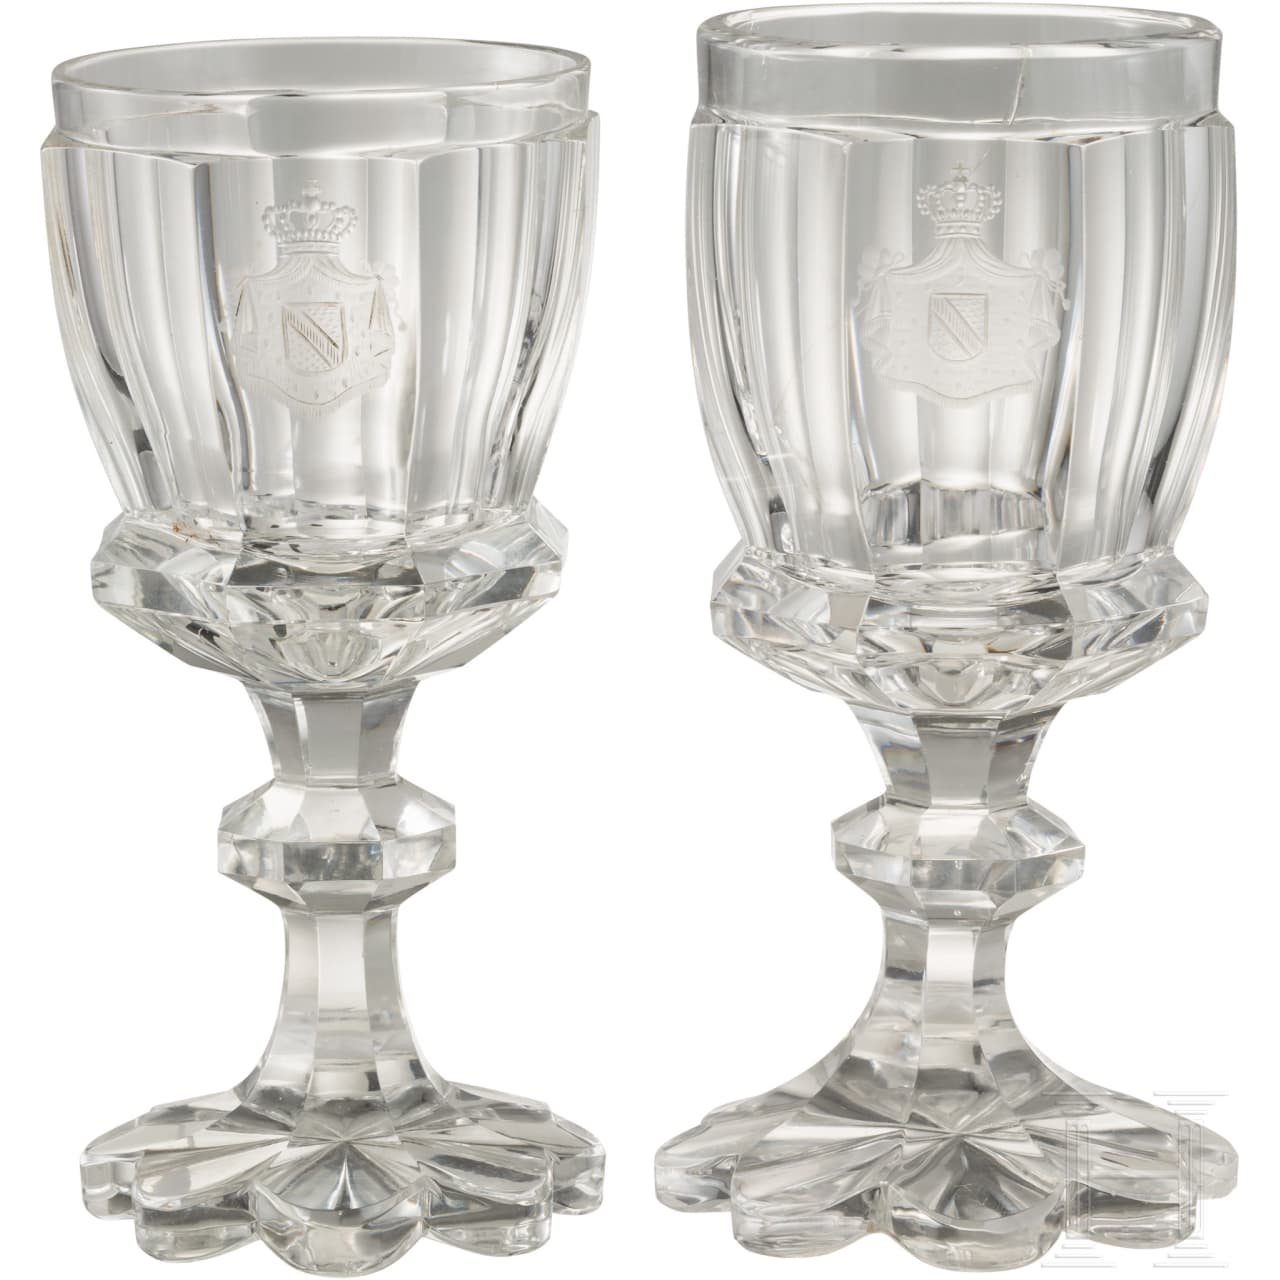 Two crystal wine glasses of the Grand Dukes of Baden